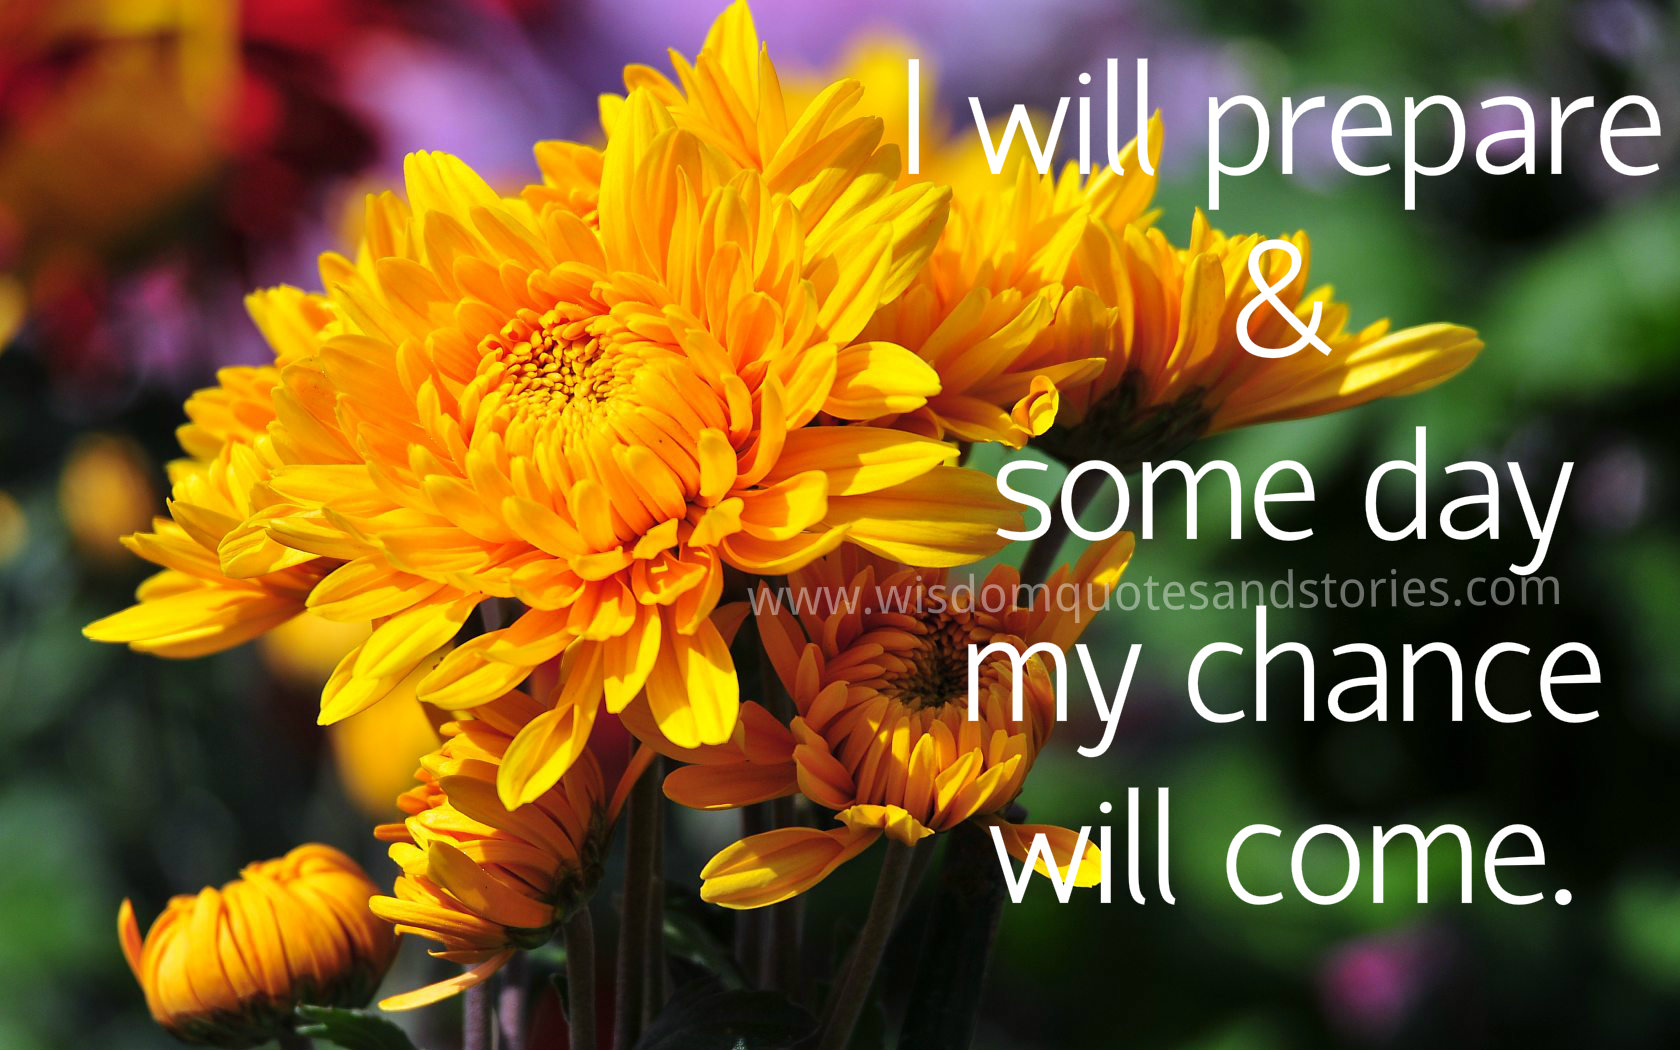 I will prepare and some day my chance will come - Wisdom Quotes and Stories